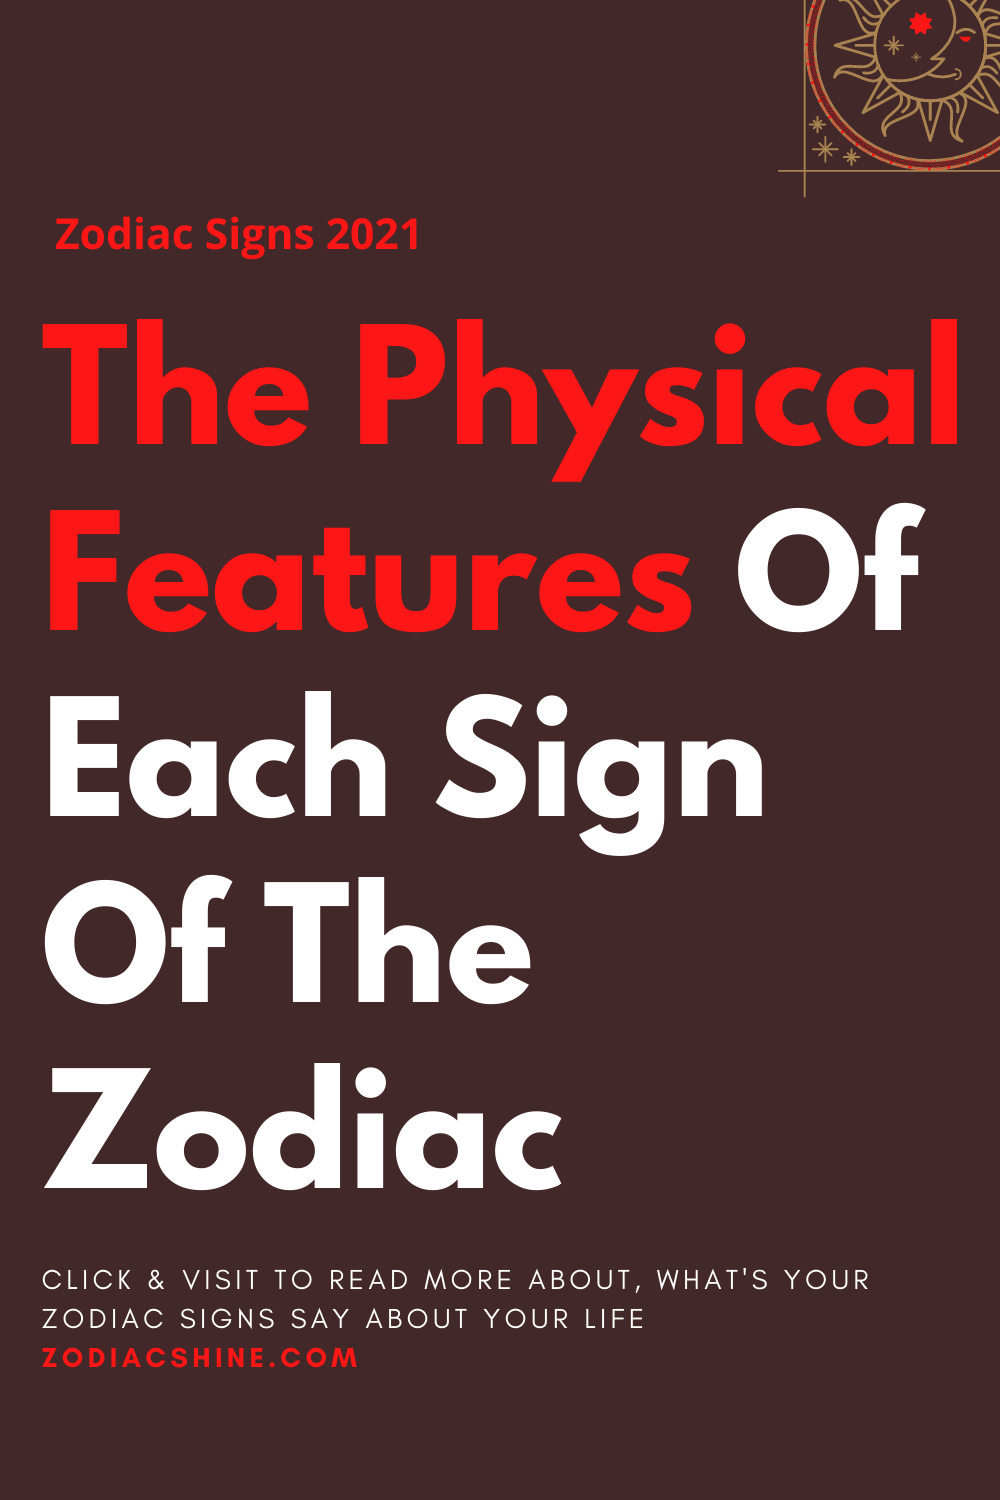 The Physical Features Of Each Sign Of The Zodiac